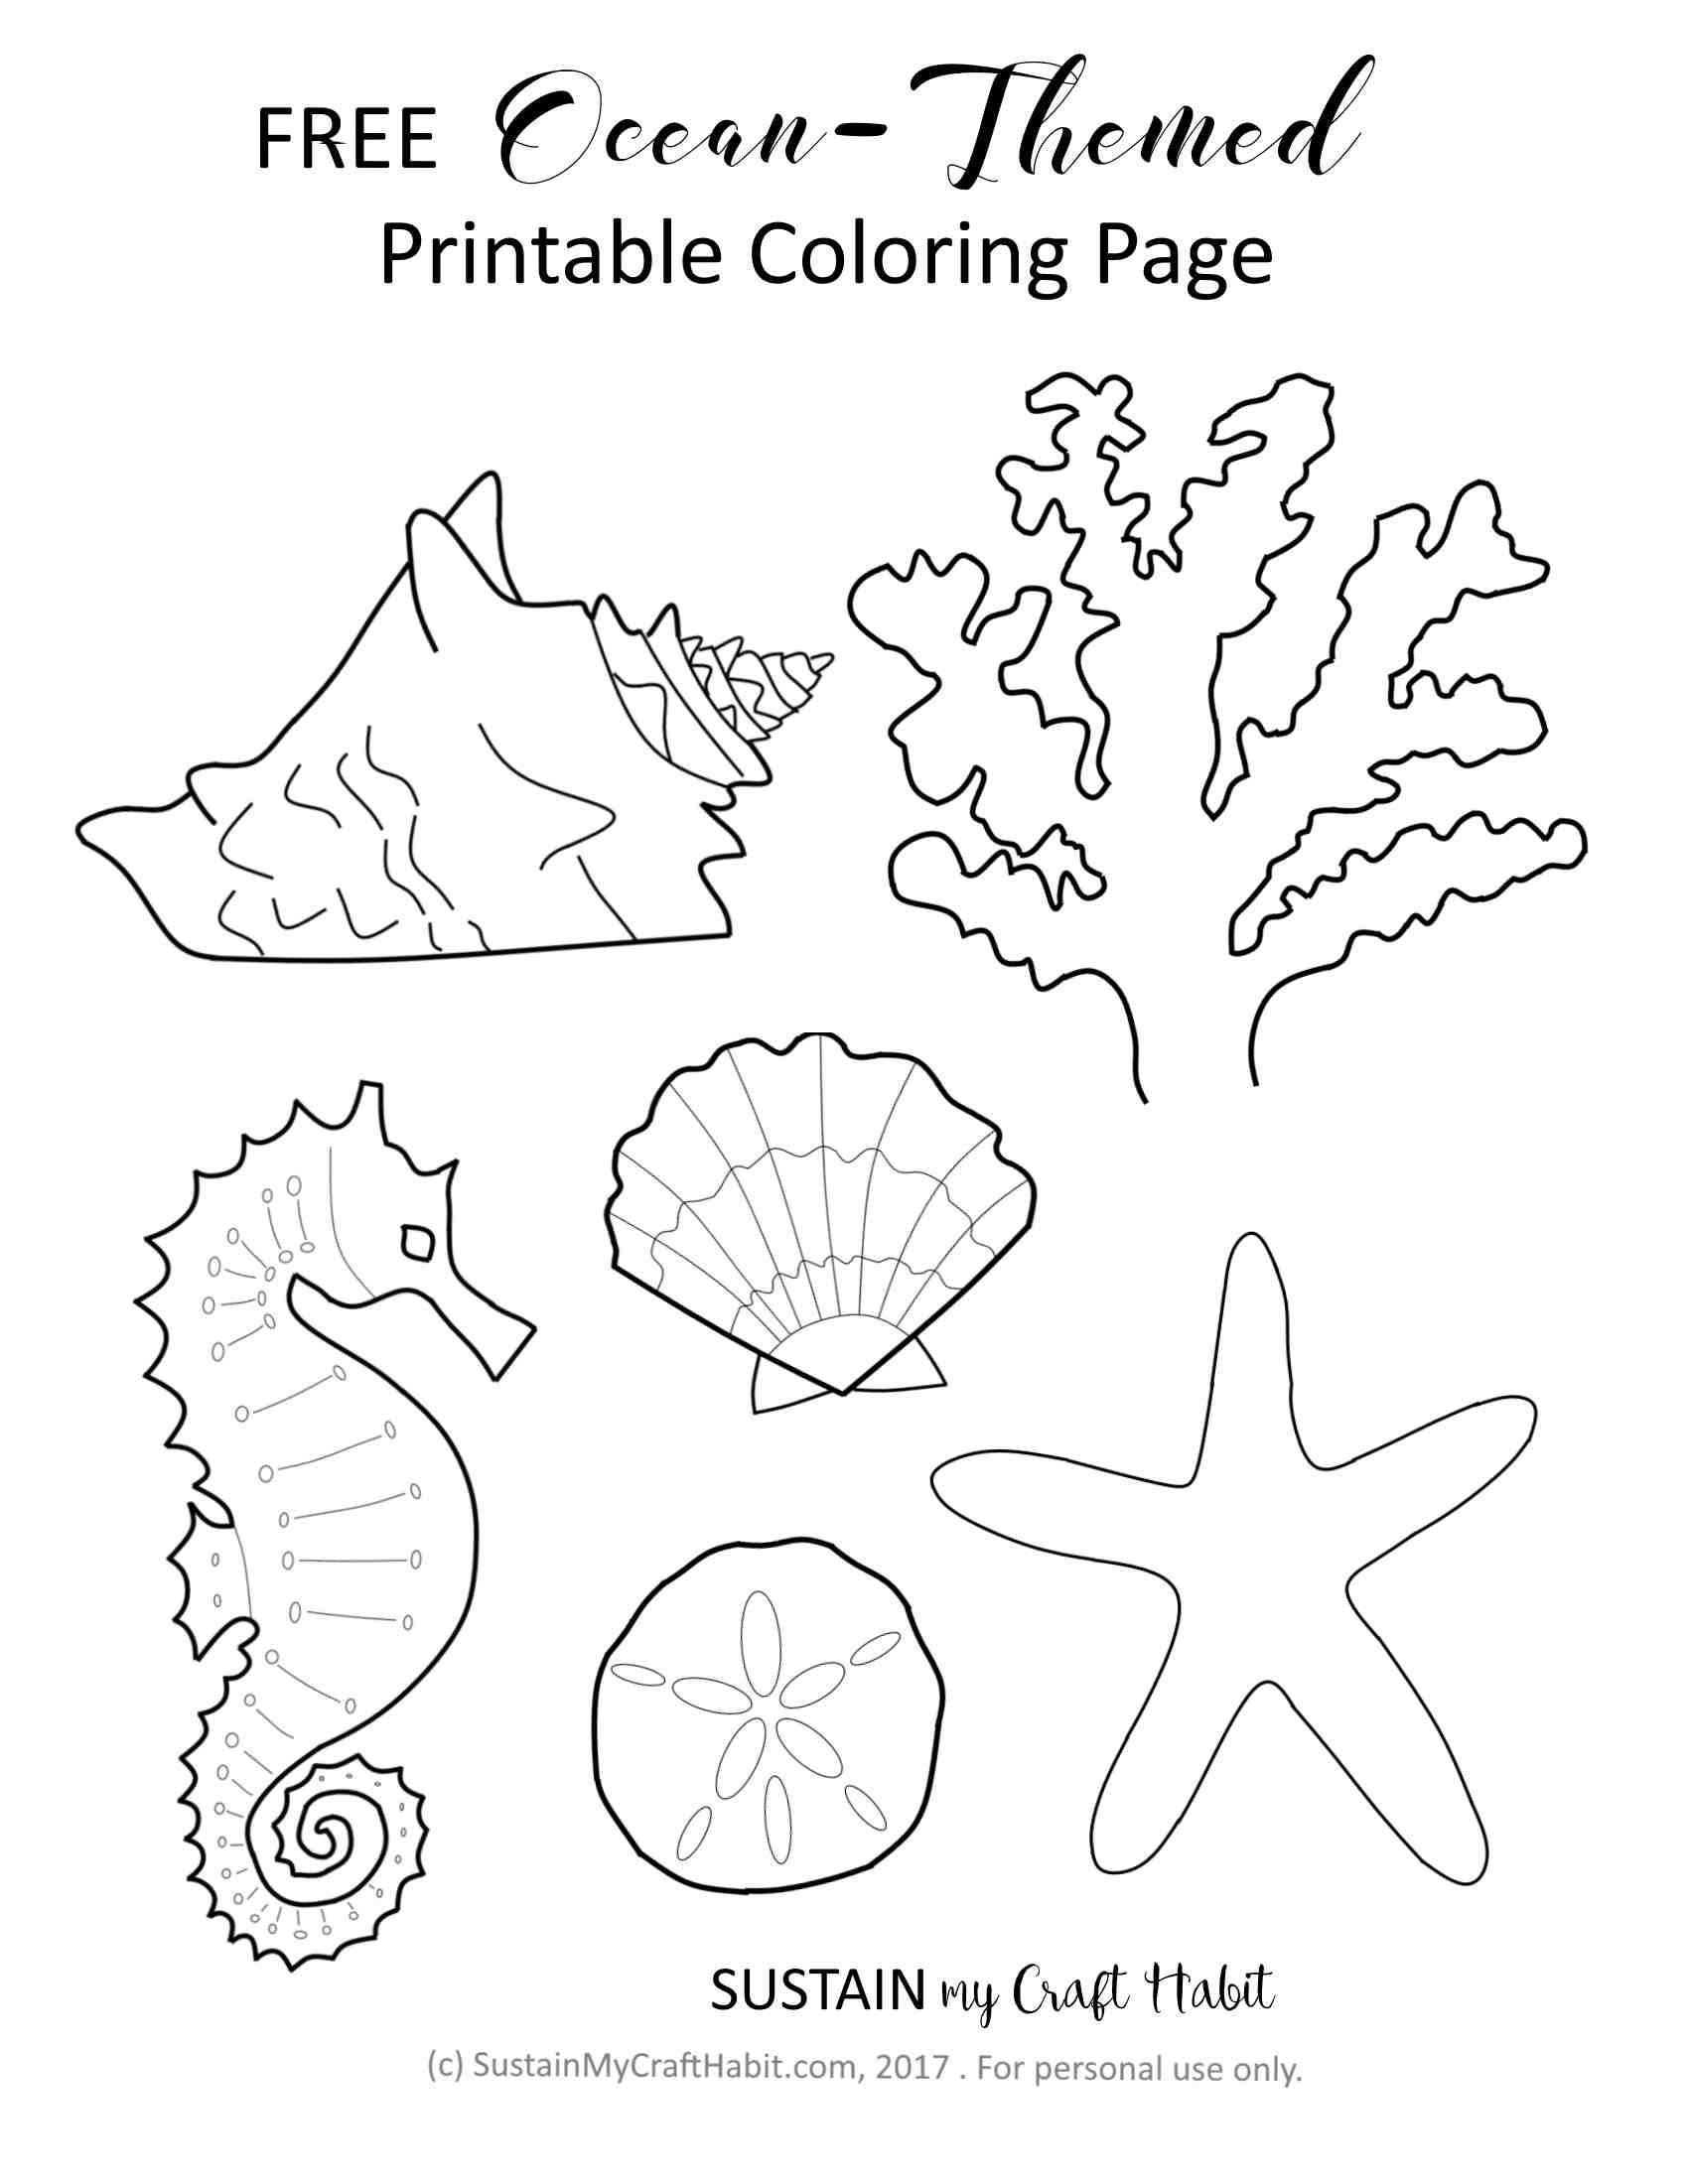 Coloramo Ocean Theme Coloring Pages Coloramo Best Free